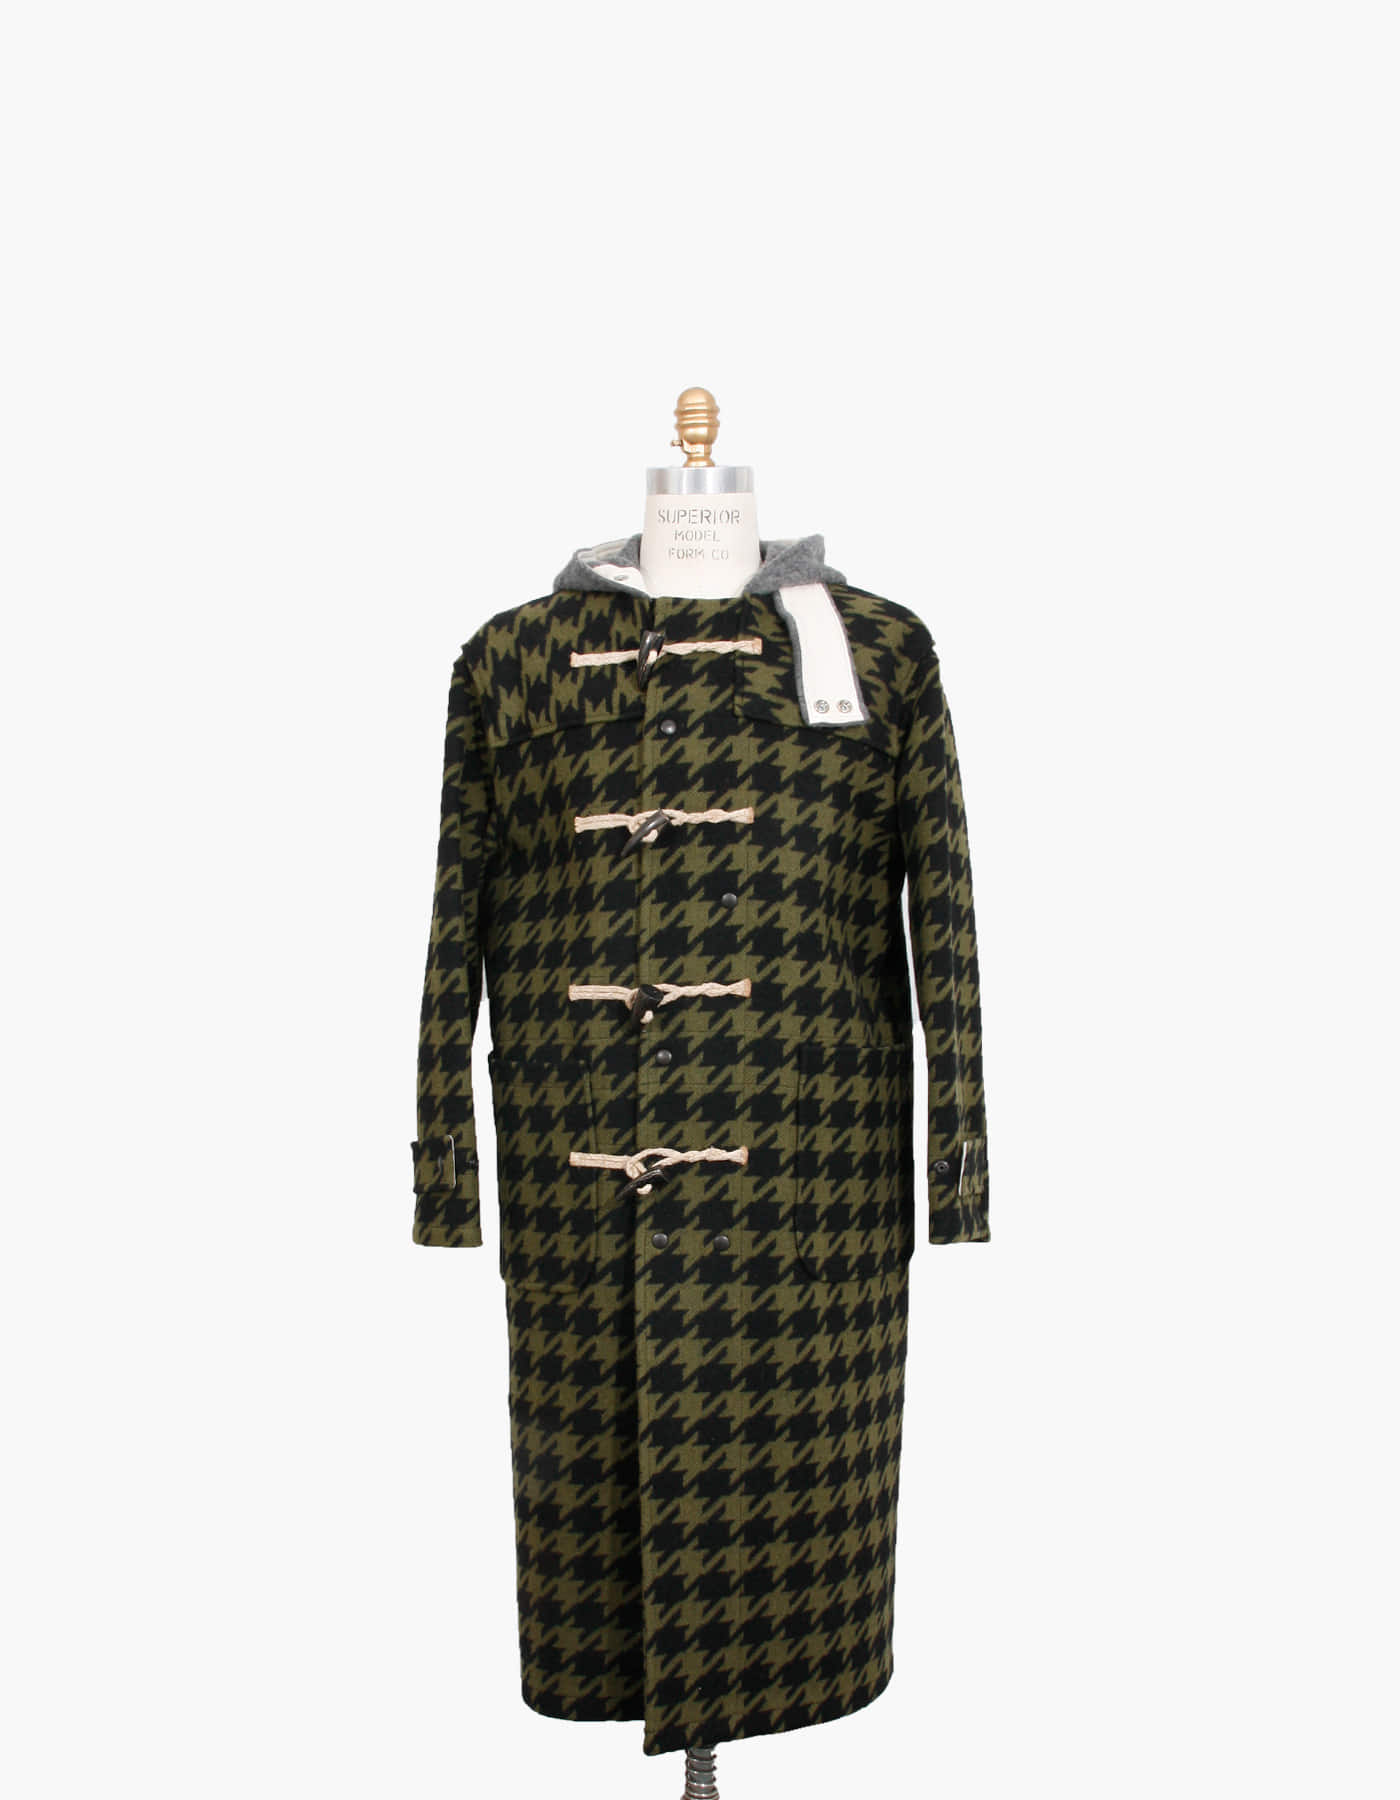 HOUNDSTOOTH WOOL DUFFLE COAT / FATIGUE